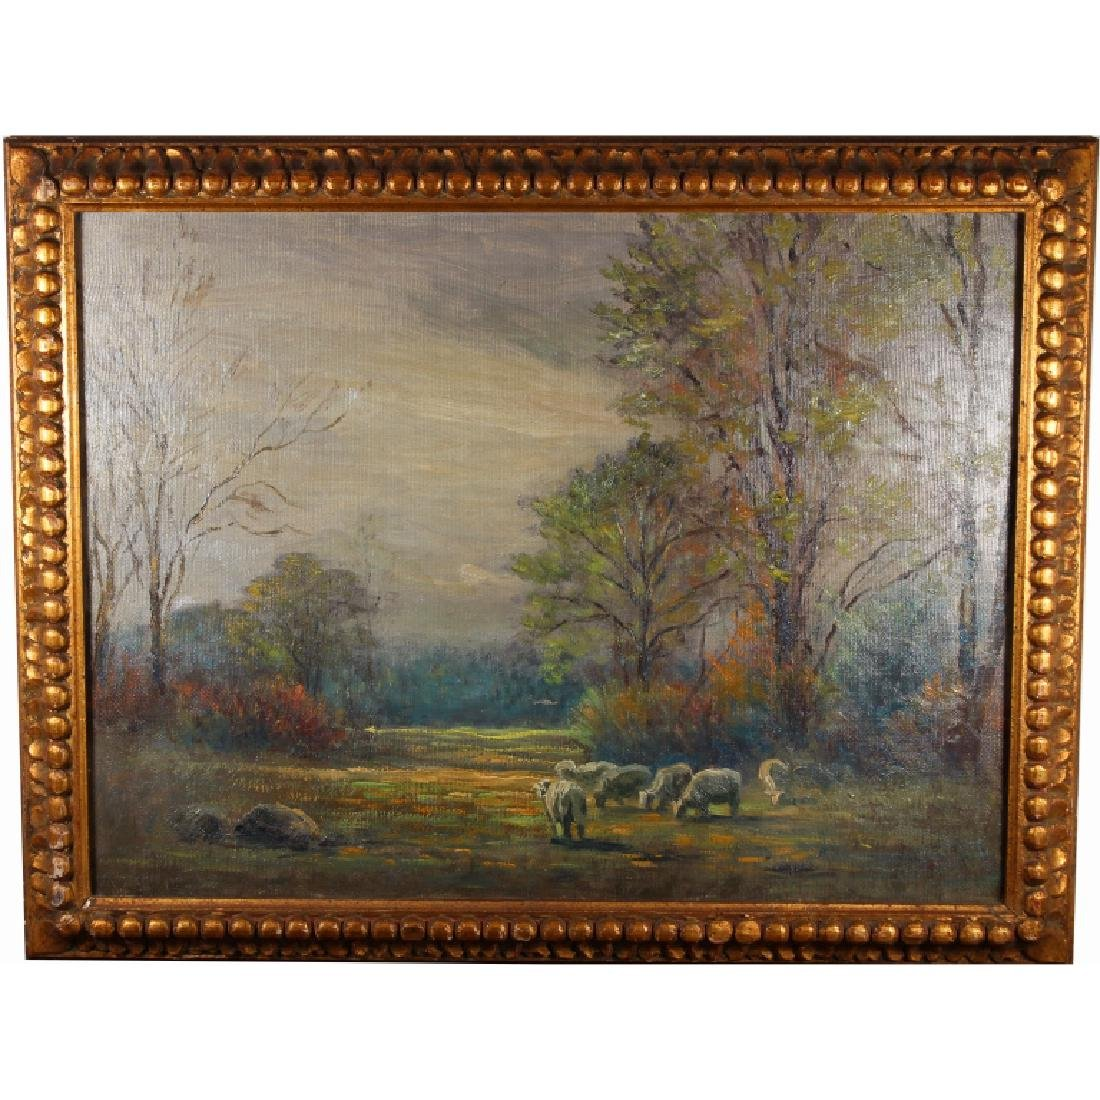 American School, 19th C. Painting of Sheep in a La